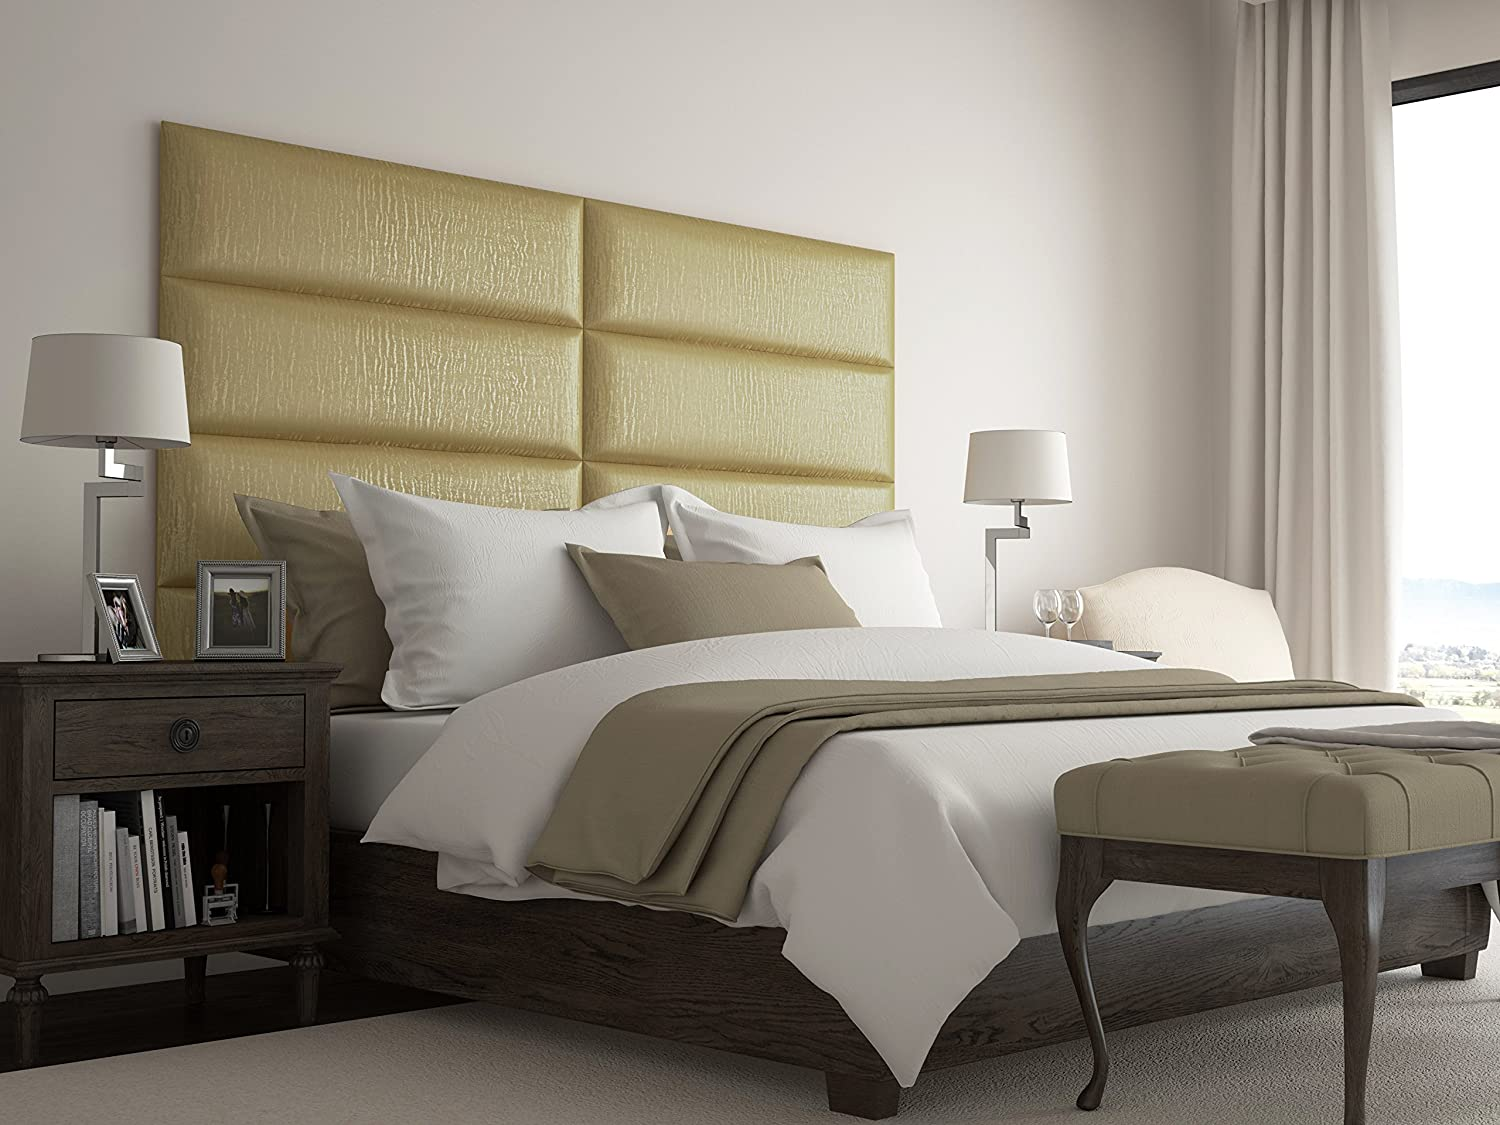 Vant upholstered headboards accent wall panels packs of 4 pearl gold 39 wide x 11 5 height easy to install twin king size headboard